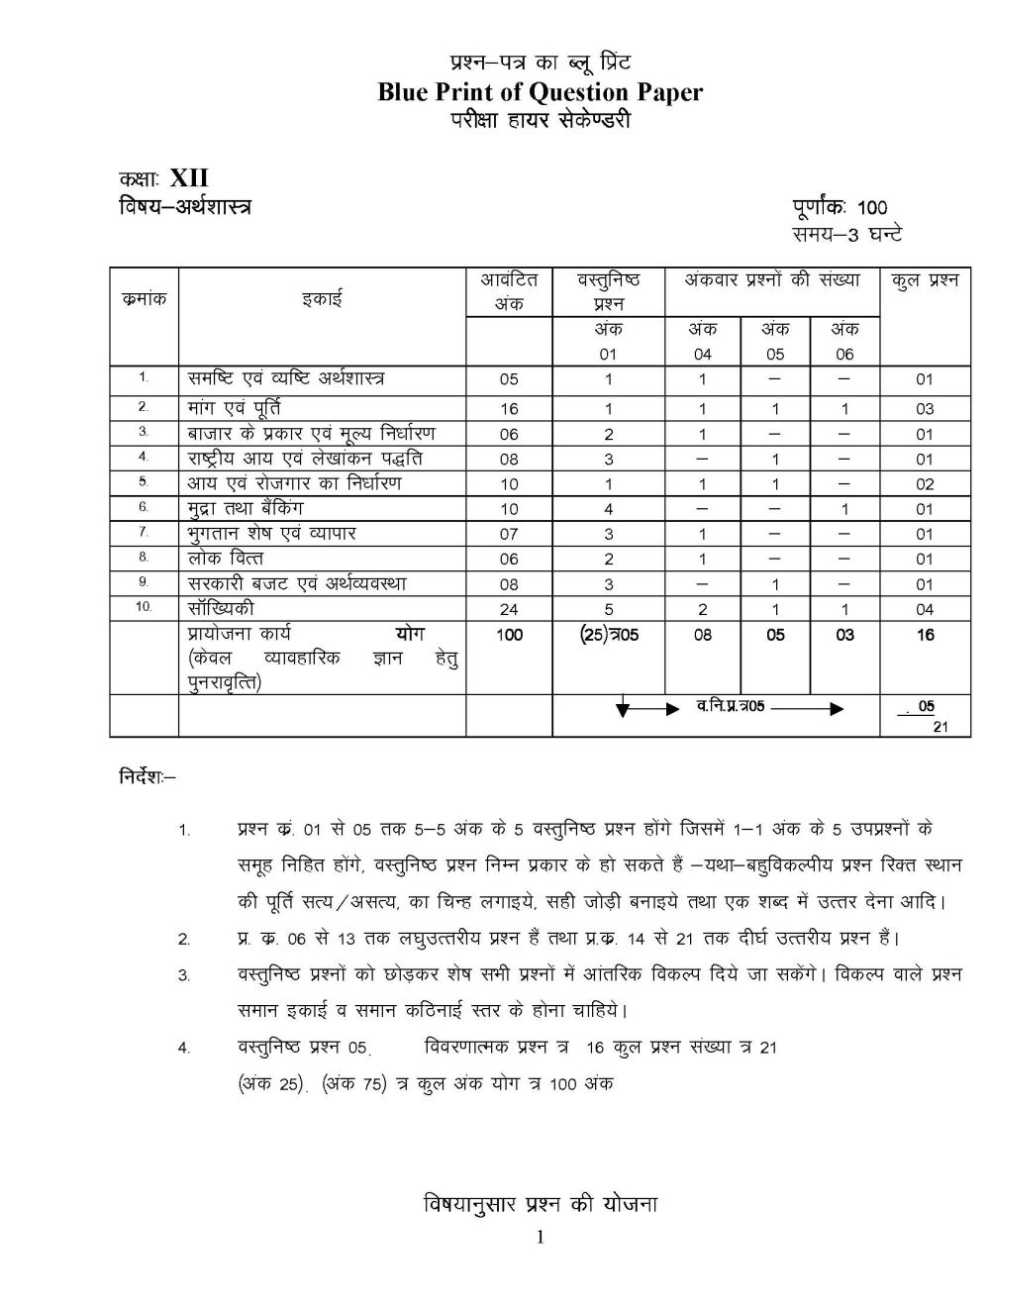 Mp board class 12 economics exam previous years question papers mp board class 12 economics exam previous years question papers 2018 2019 studychacha malvernweather Gallery